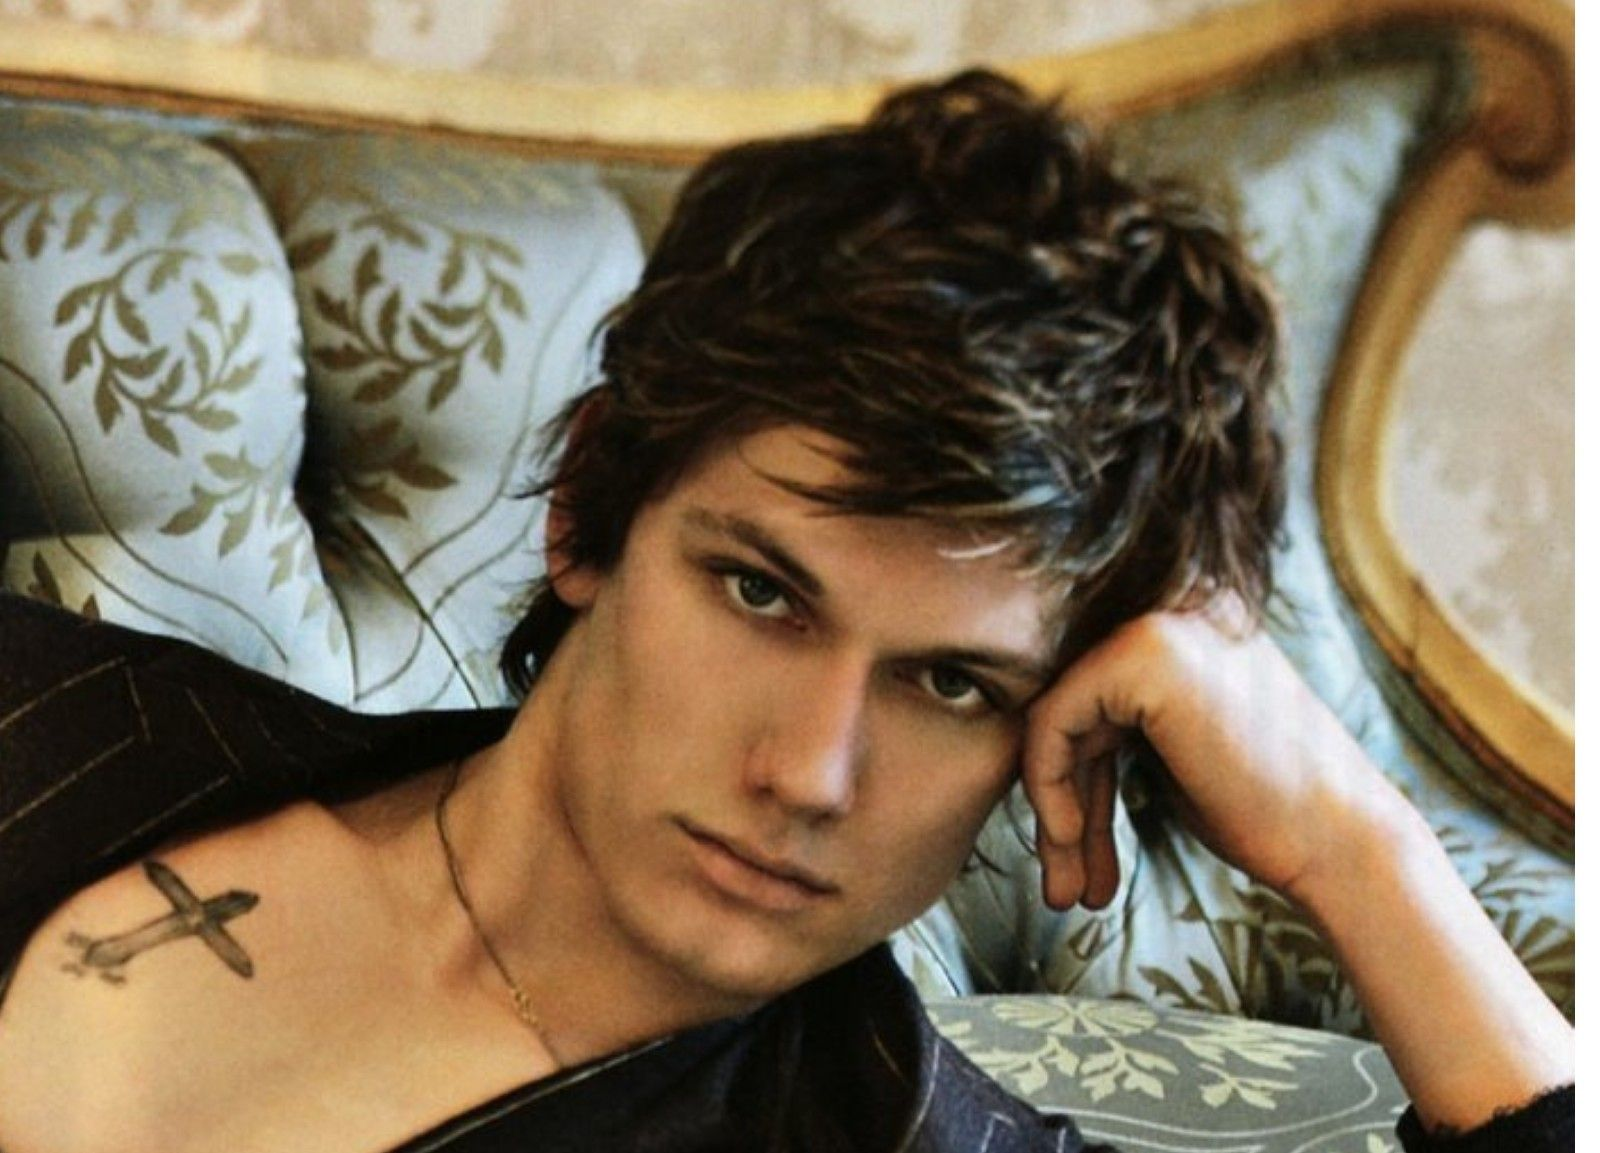 Not Exactly Lucas Carter But This Is A Hot Pic It Reminds Me Of Him Somehow Black Hair Blue Eyes Alex Pettyfer Blue Eyed Men